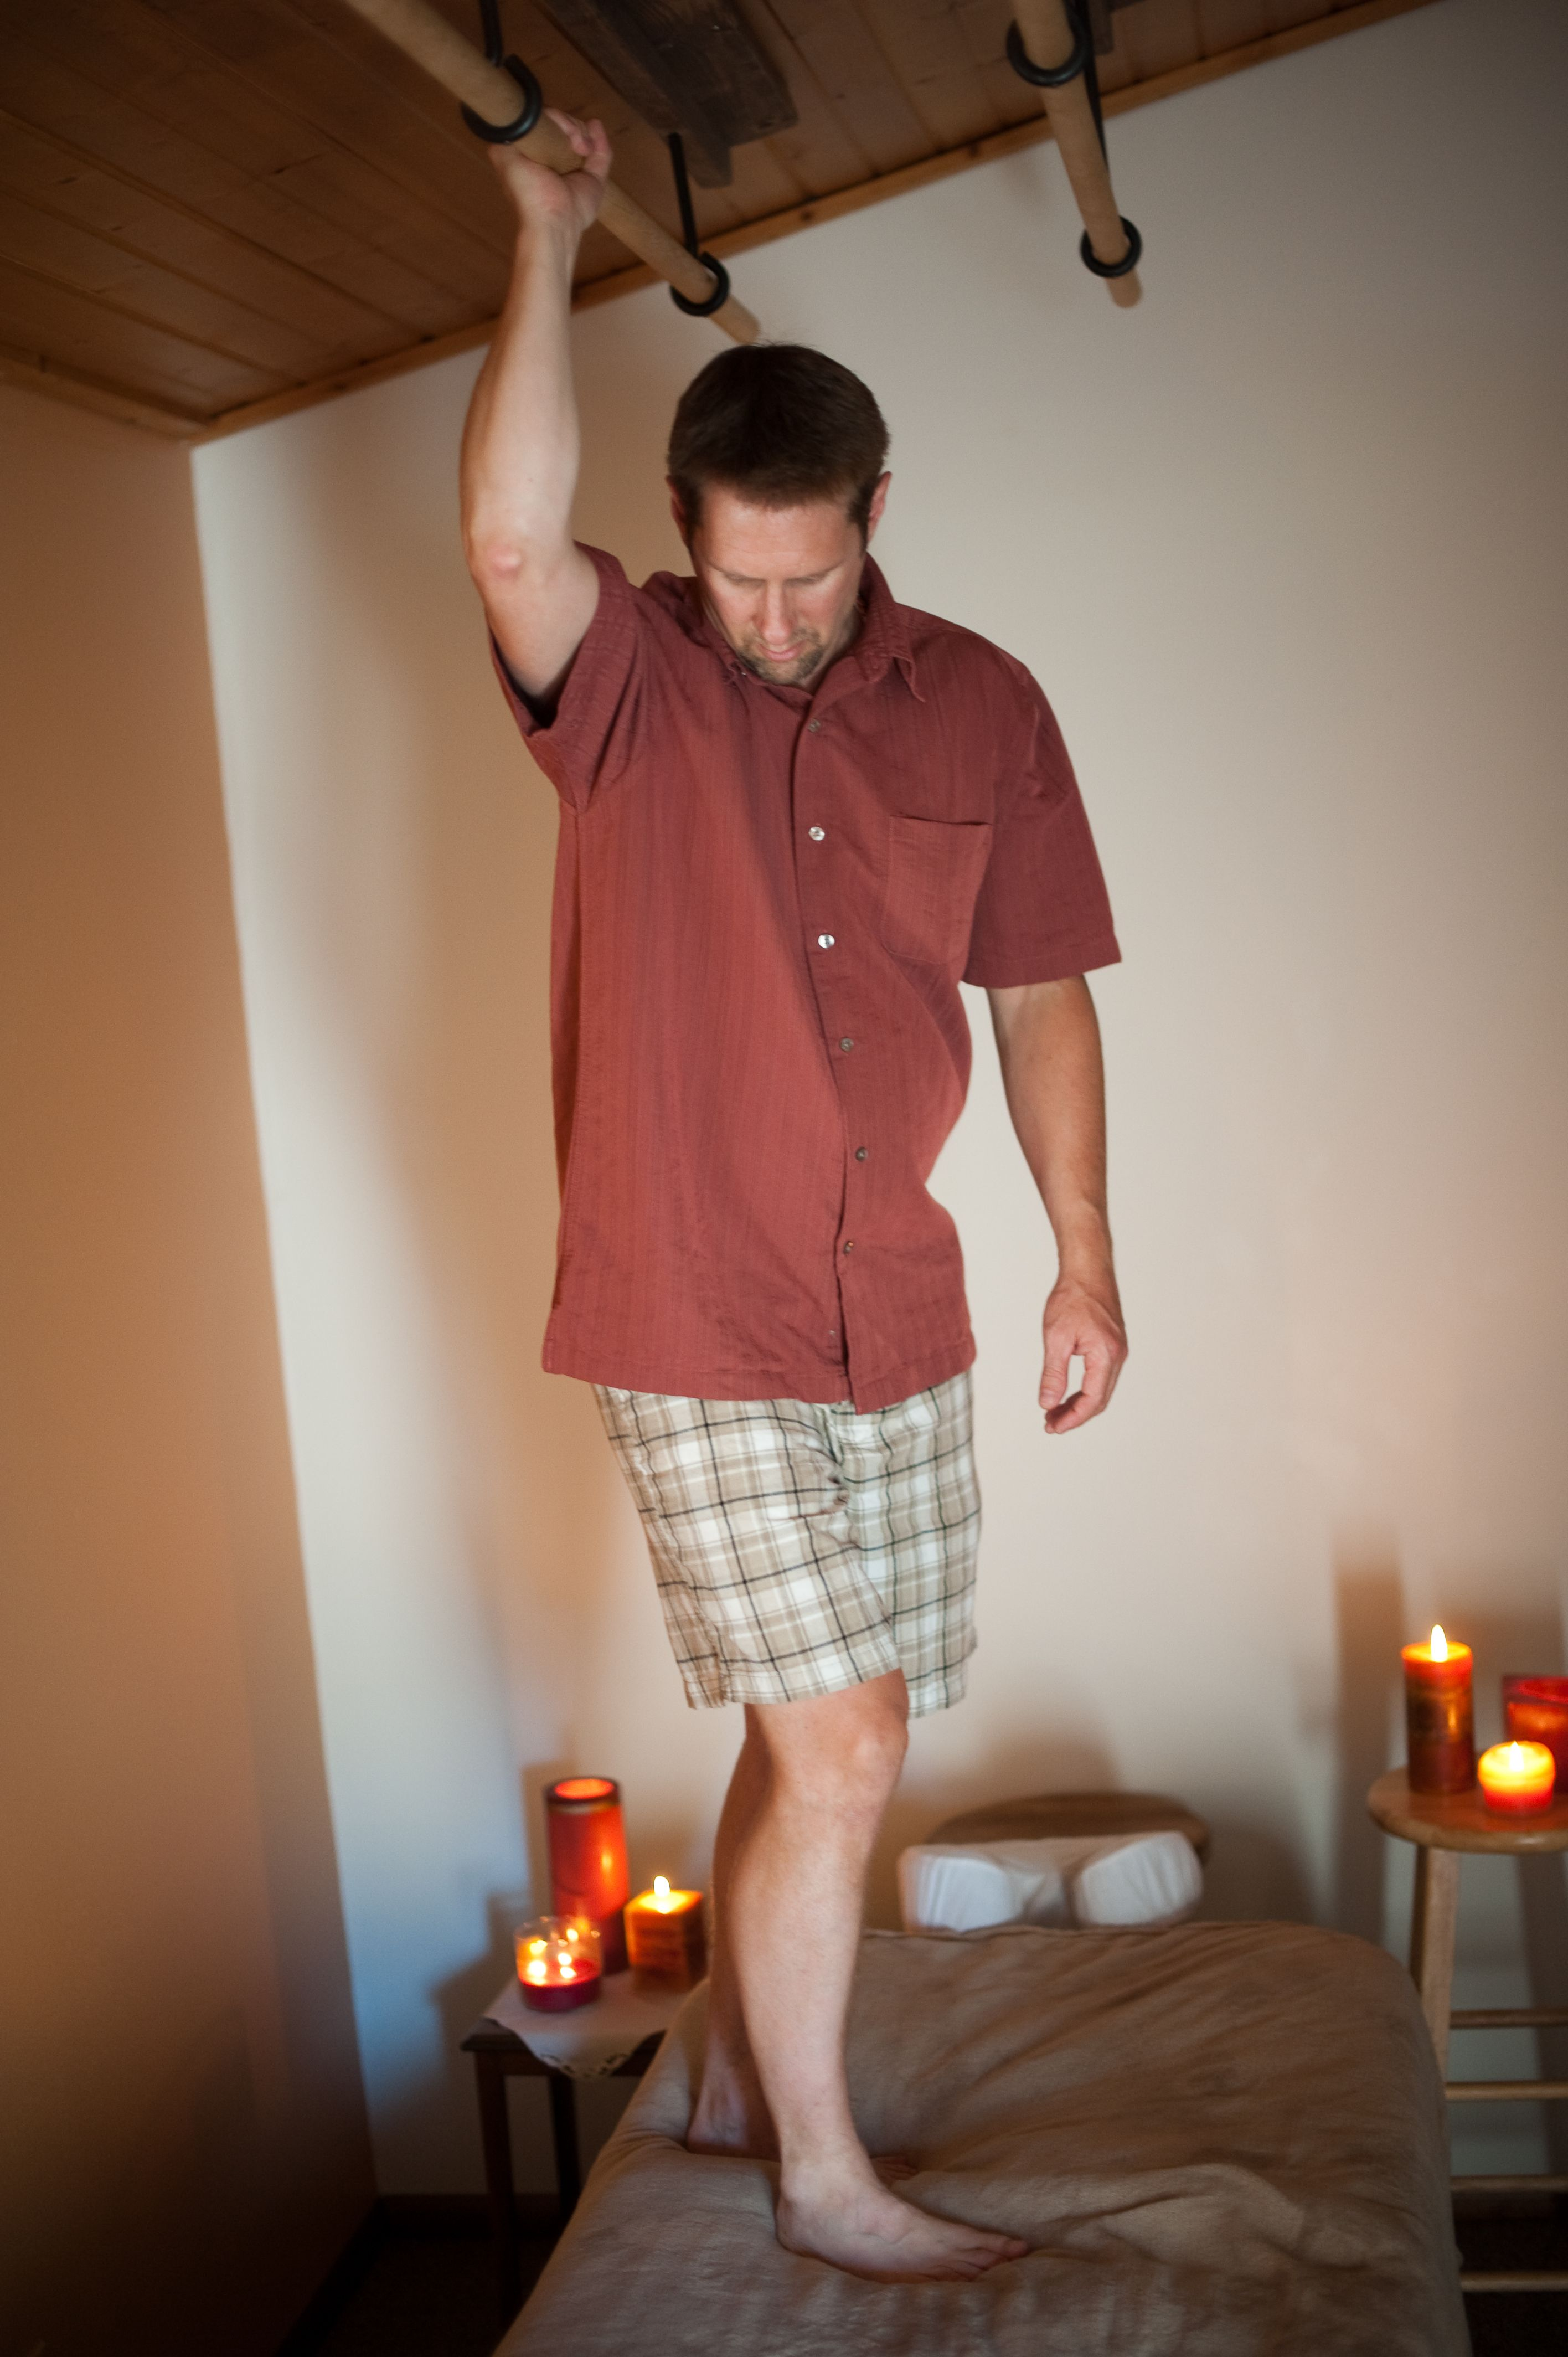 Pin by Johnny Cochrane Lmt on Massage Therapy in Kalispell